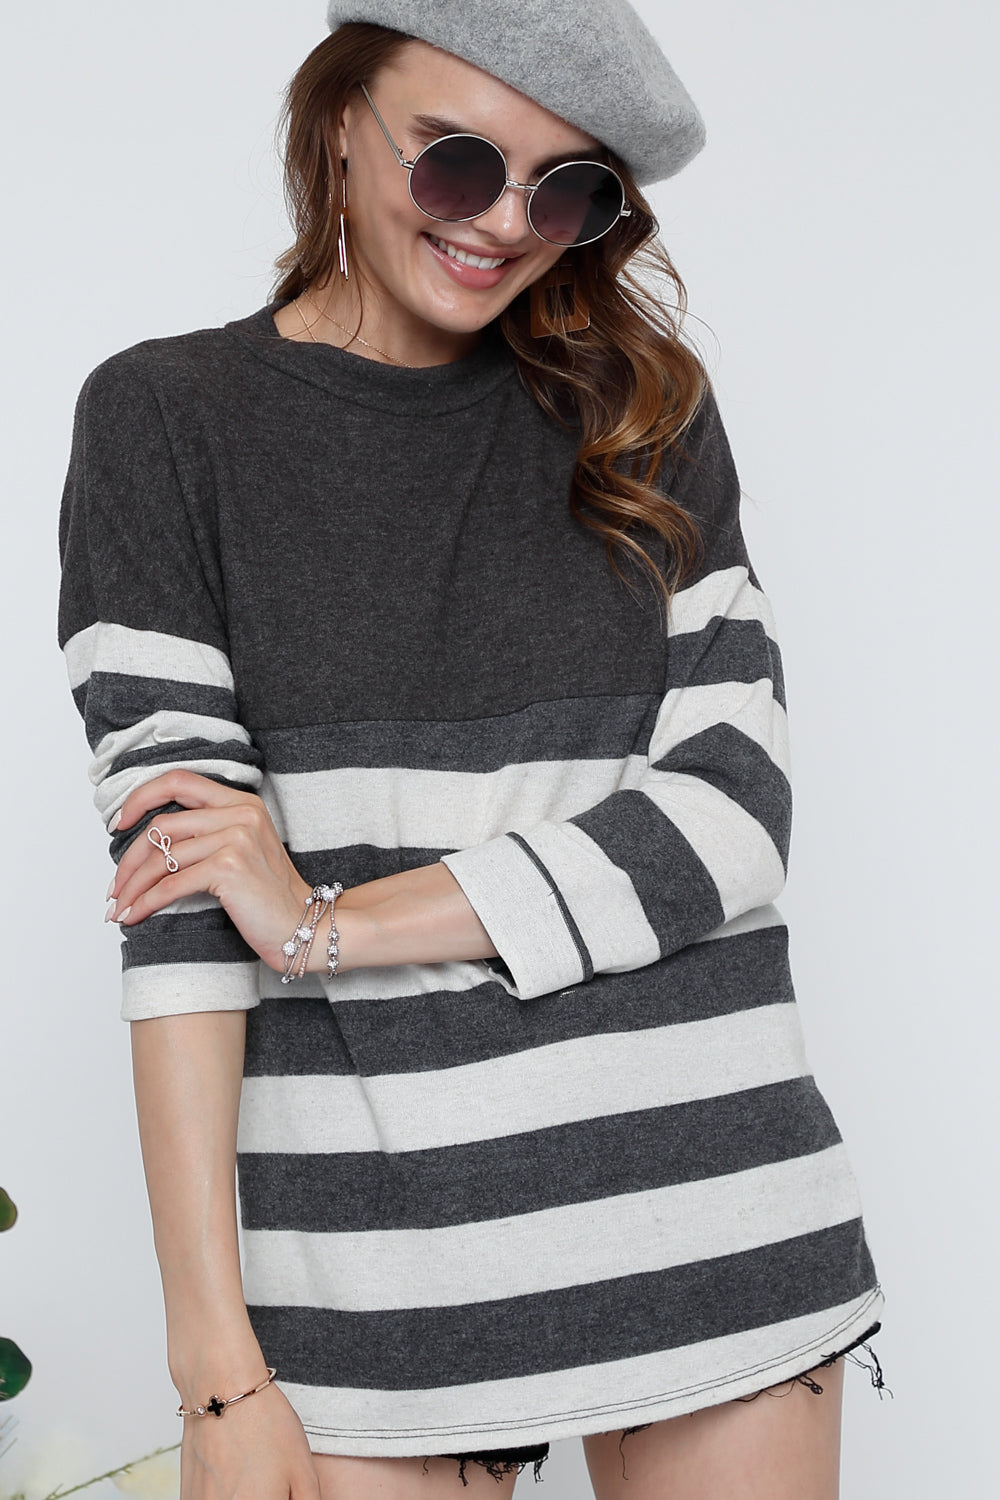 Cashmere Stripe Sweater - besties STUDIOS